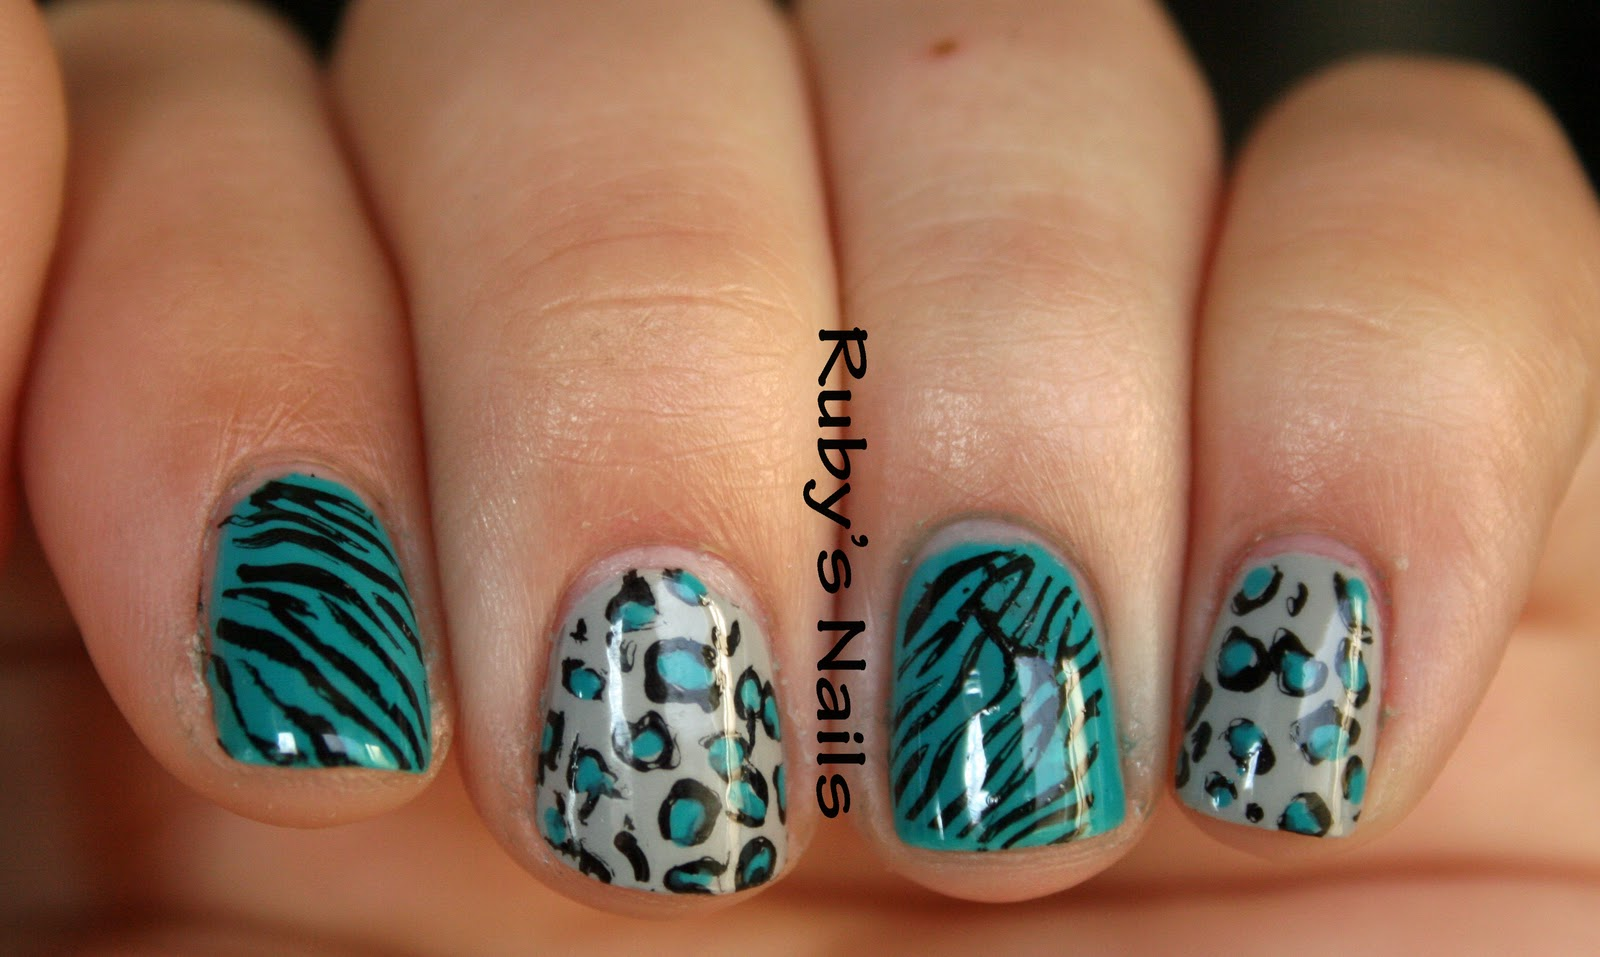 The Amusing Zebra print nail designs acrylic nails Digital Photography